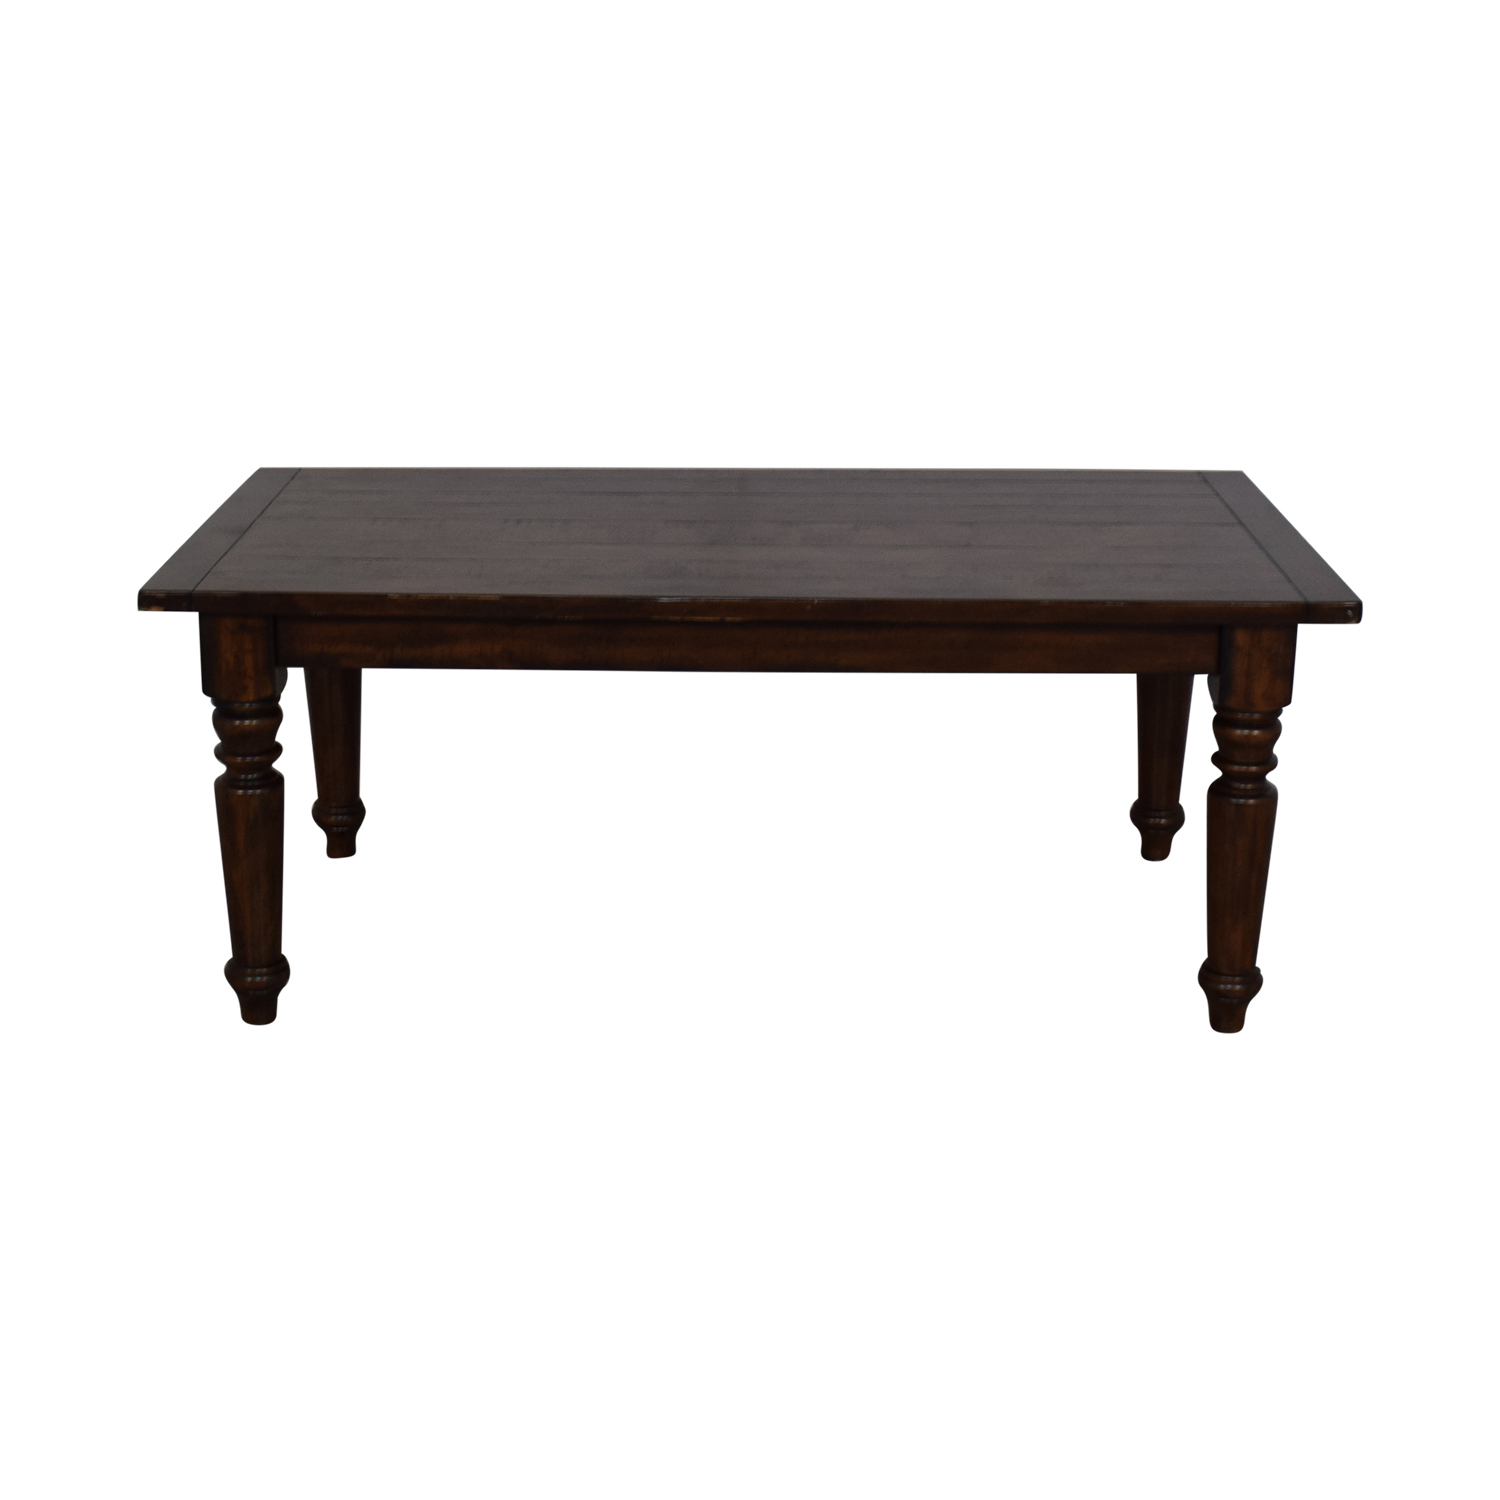 Pottery Barn Pottery Barn Sumner Extending Dining Table price